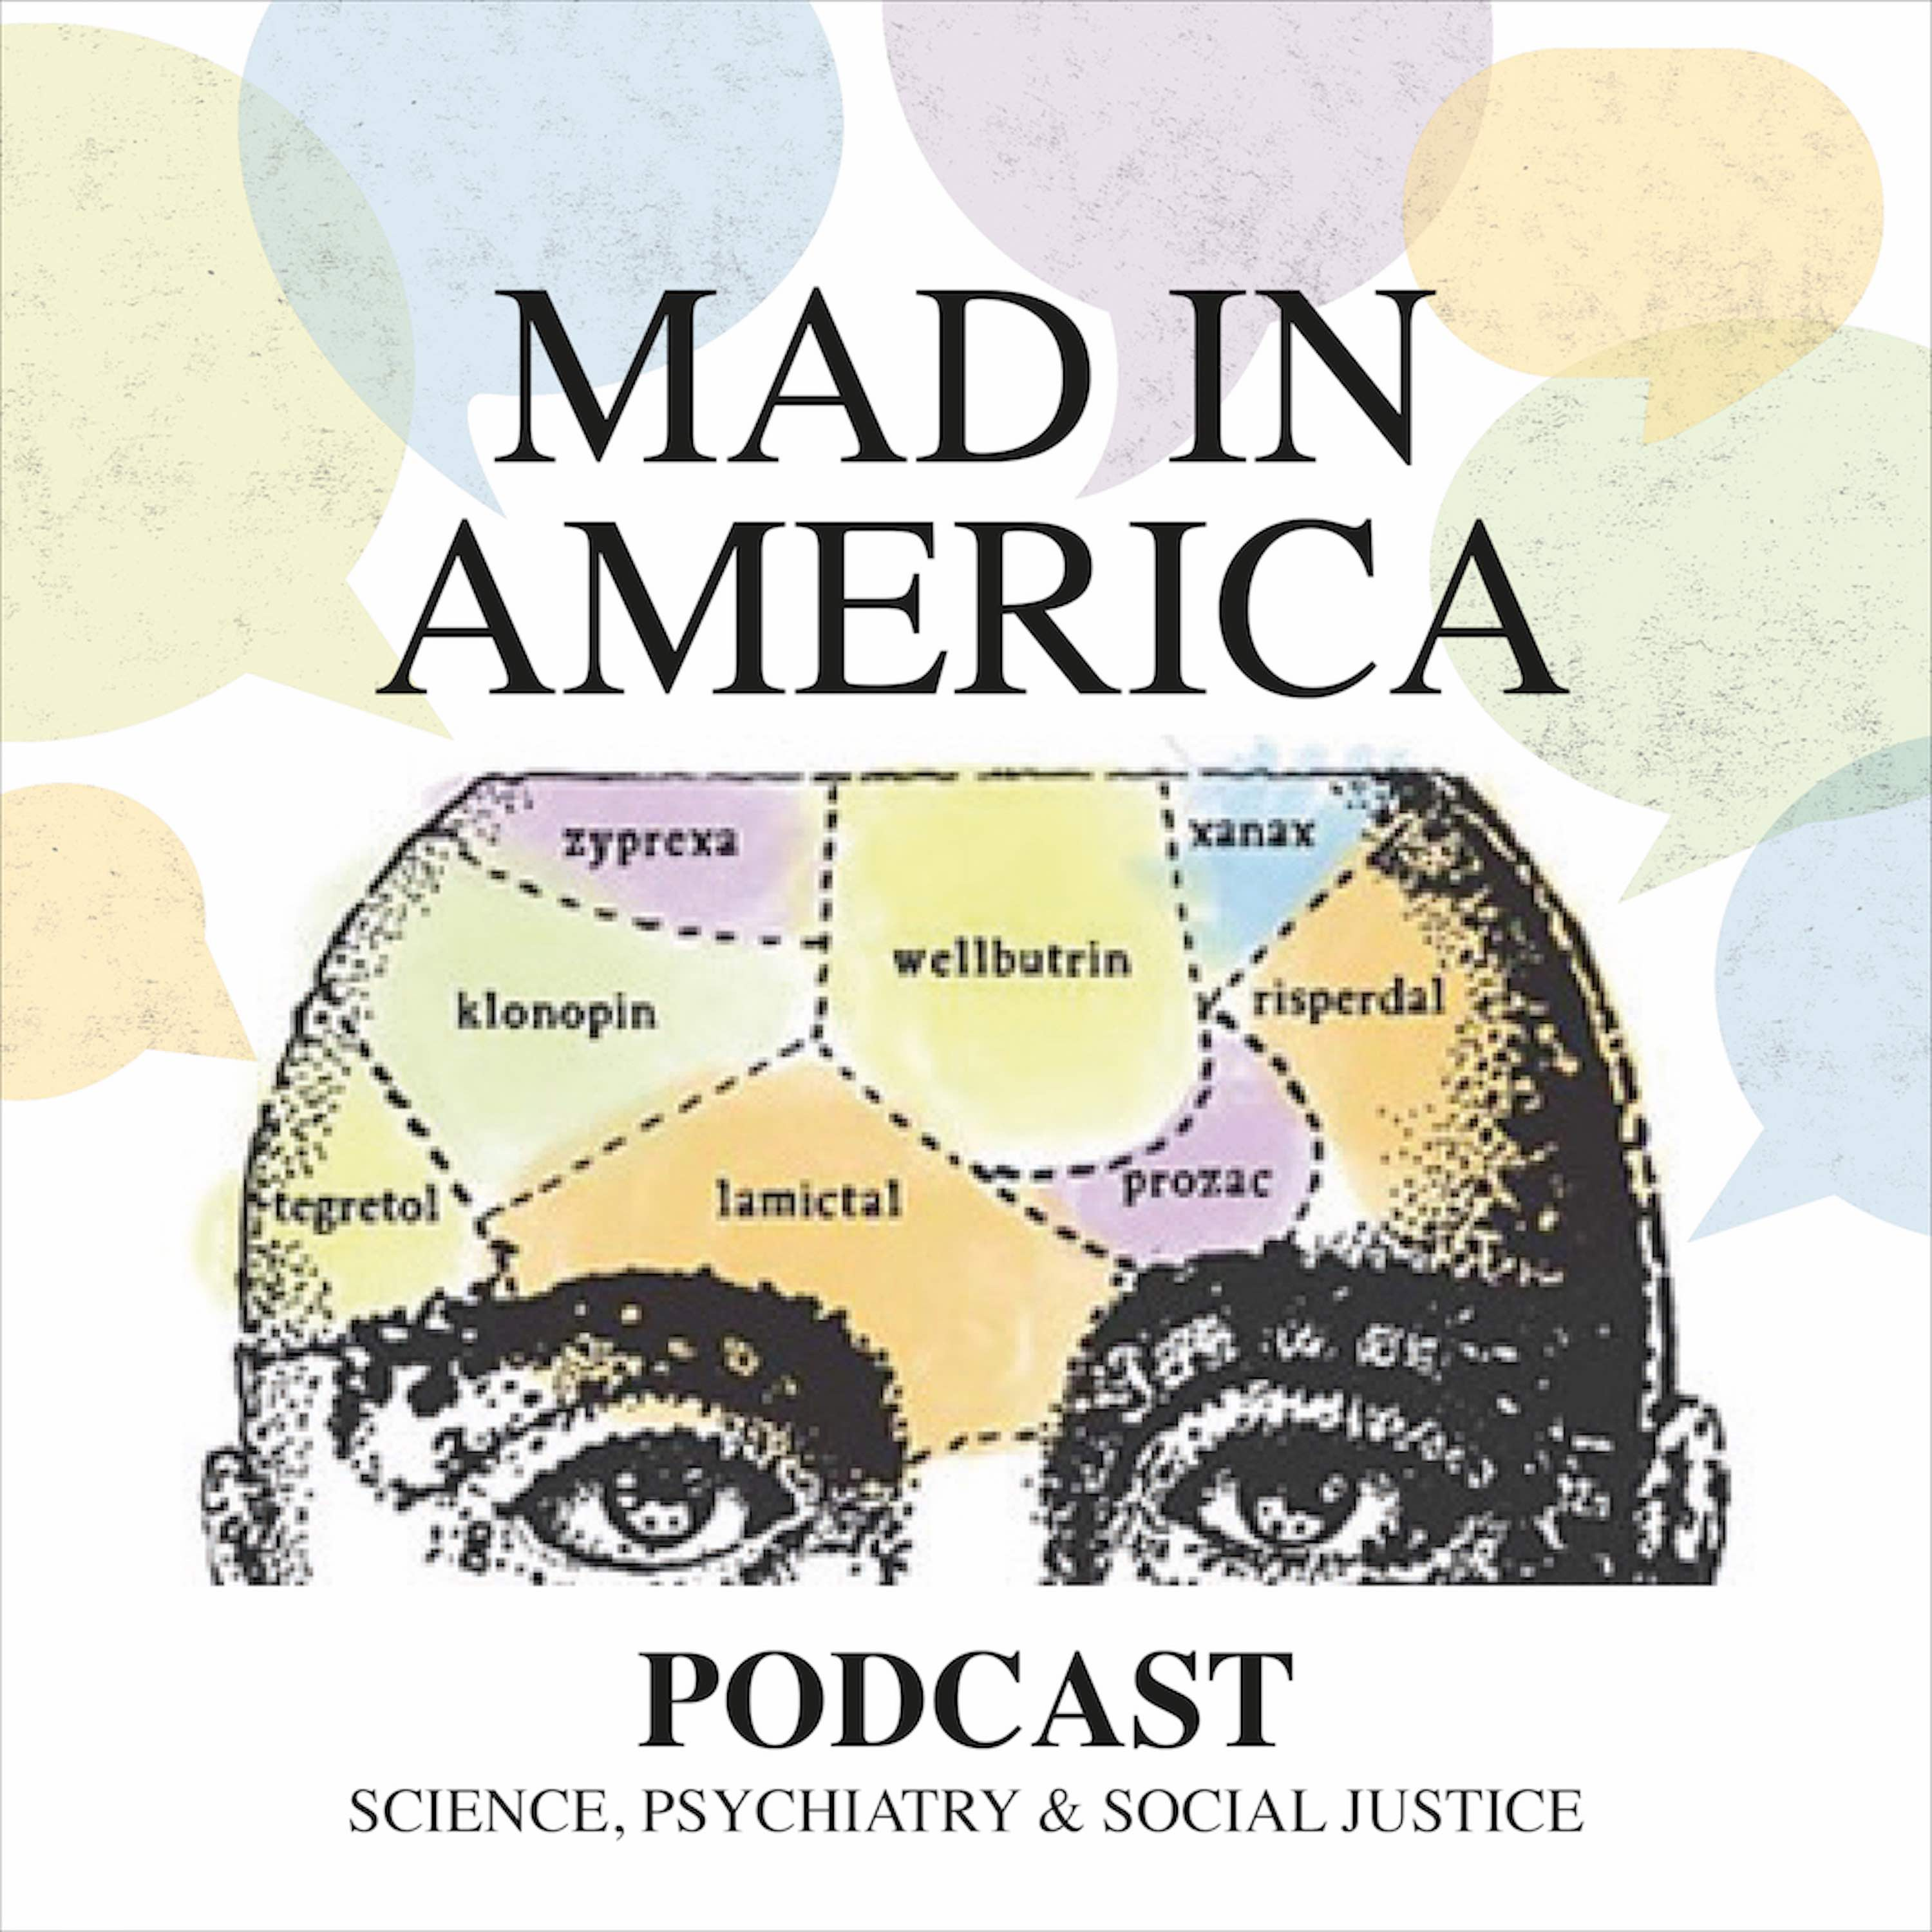 Mad in America: Rethinking Mental Health - Kermit Cole - Dialogical Approaches to Extreme States